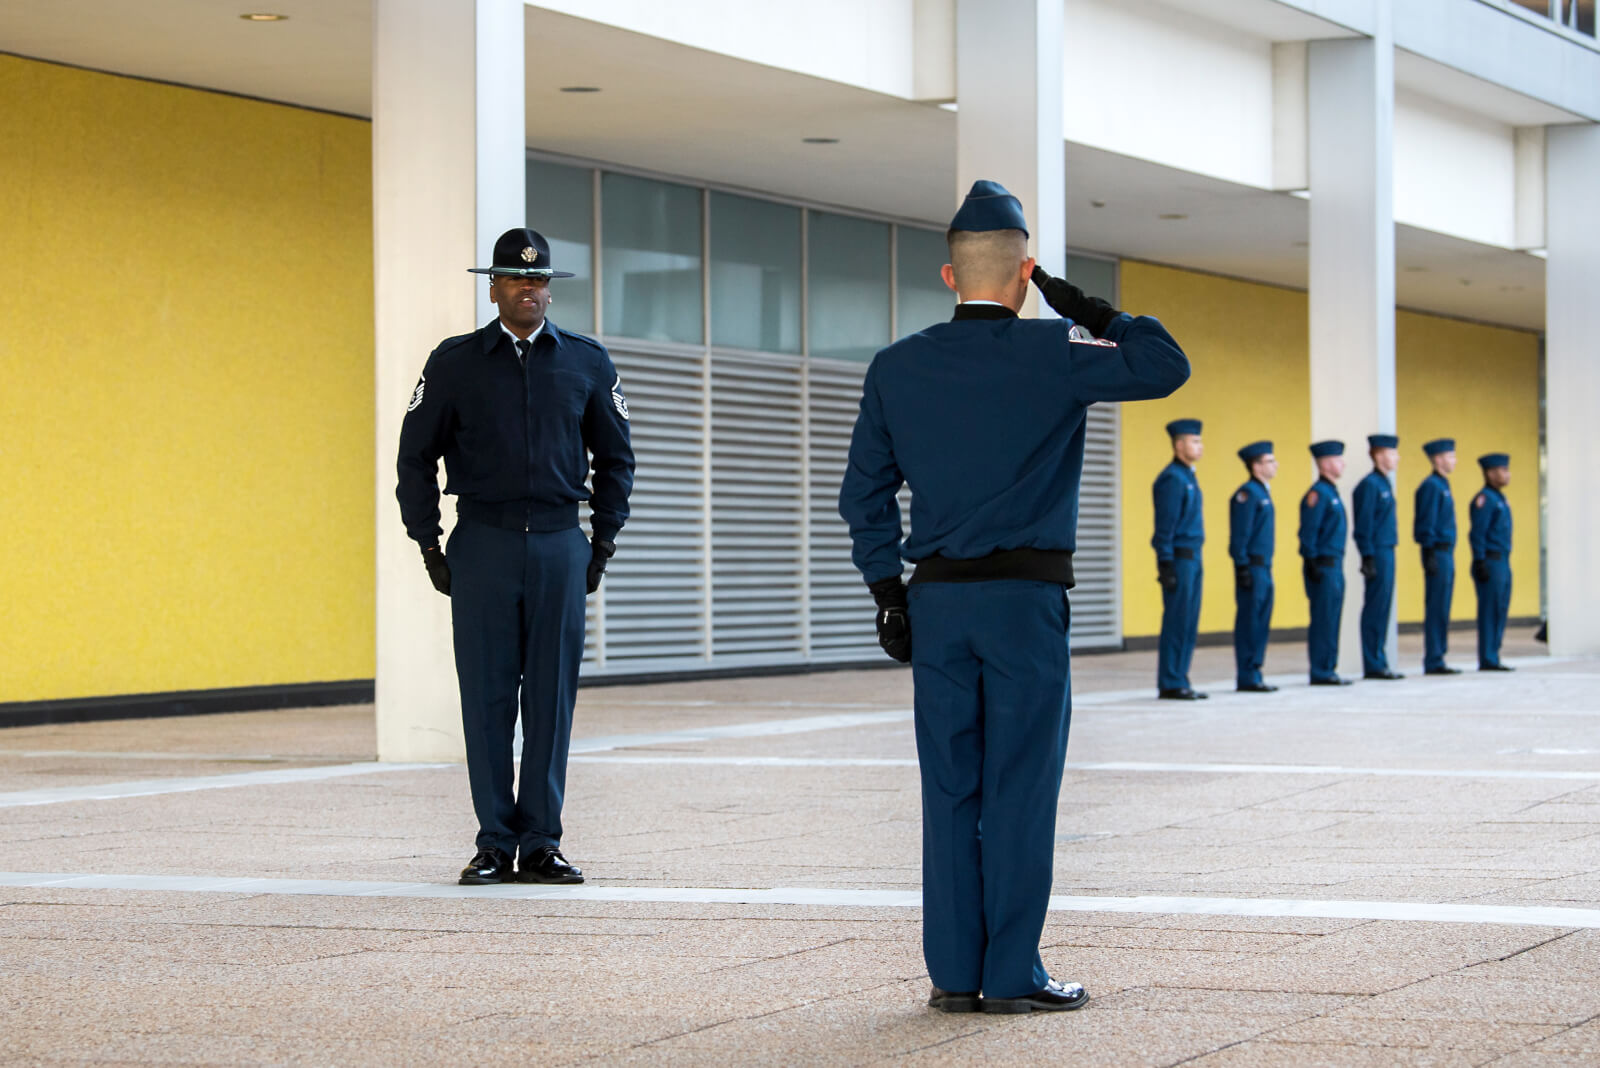 Cadets in front of building